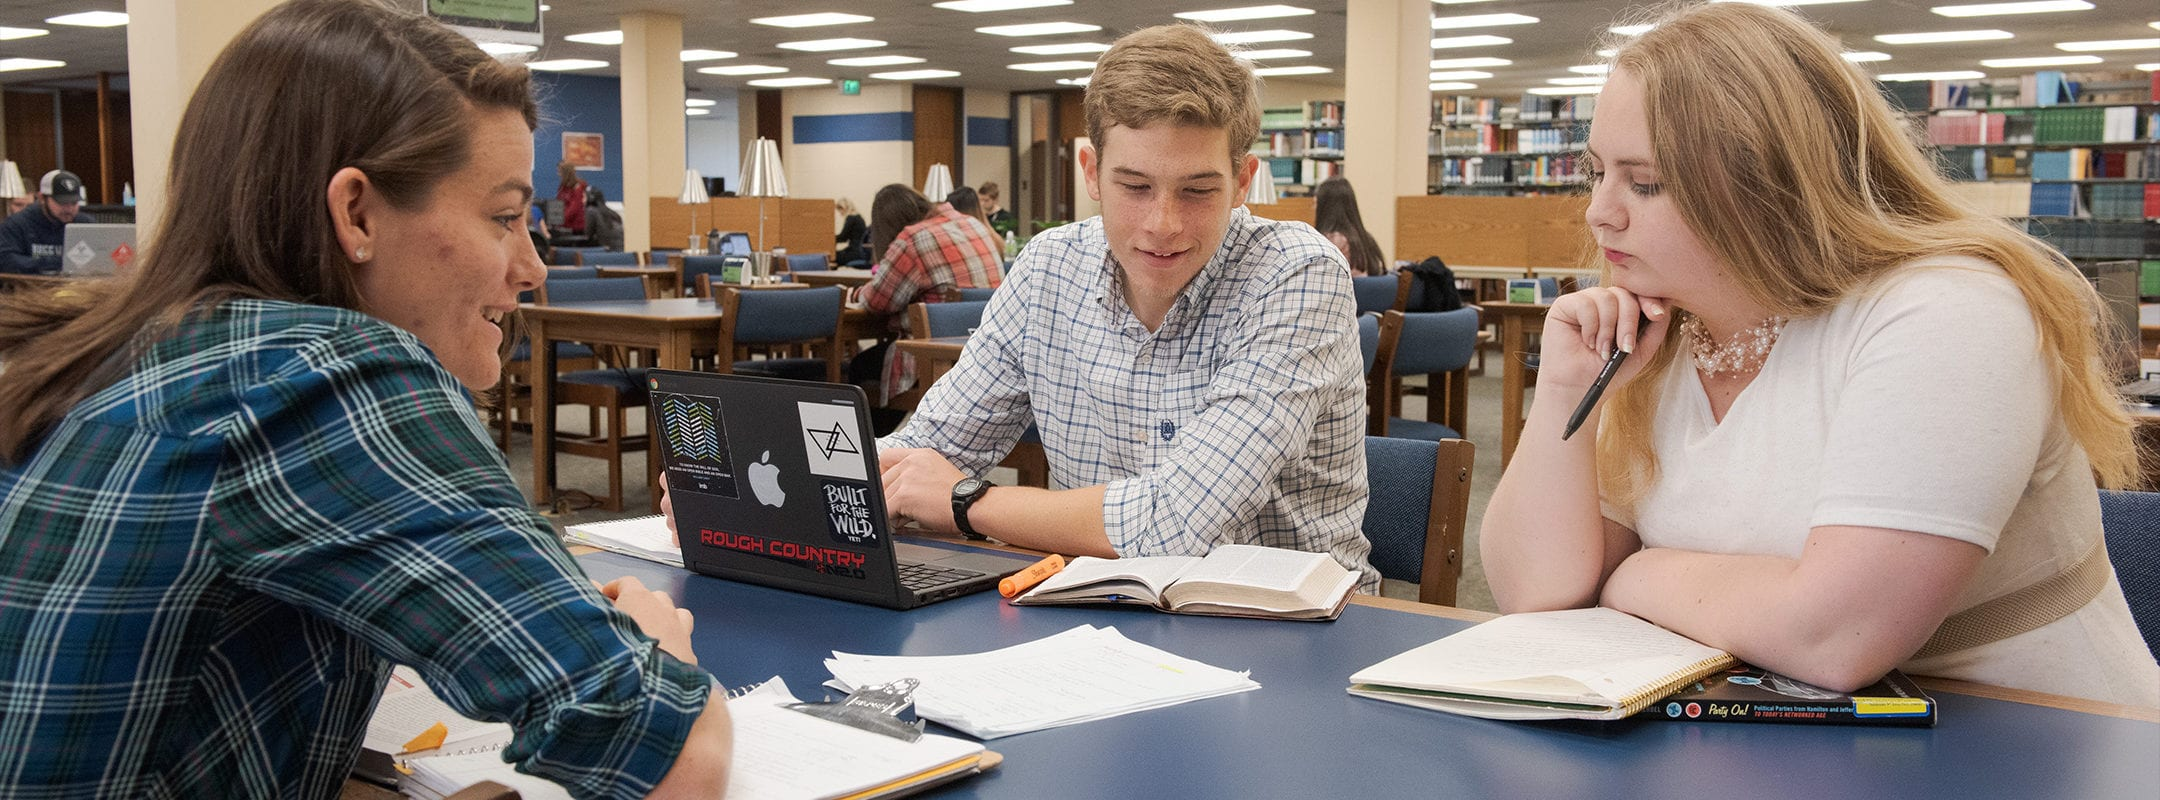 Three students in the CSU library studying together at a table.